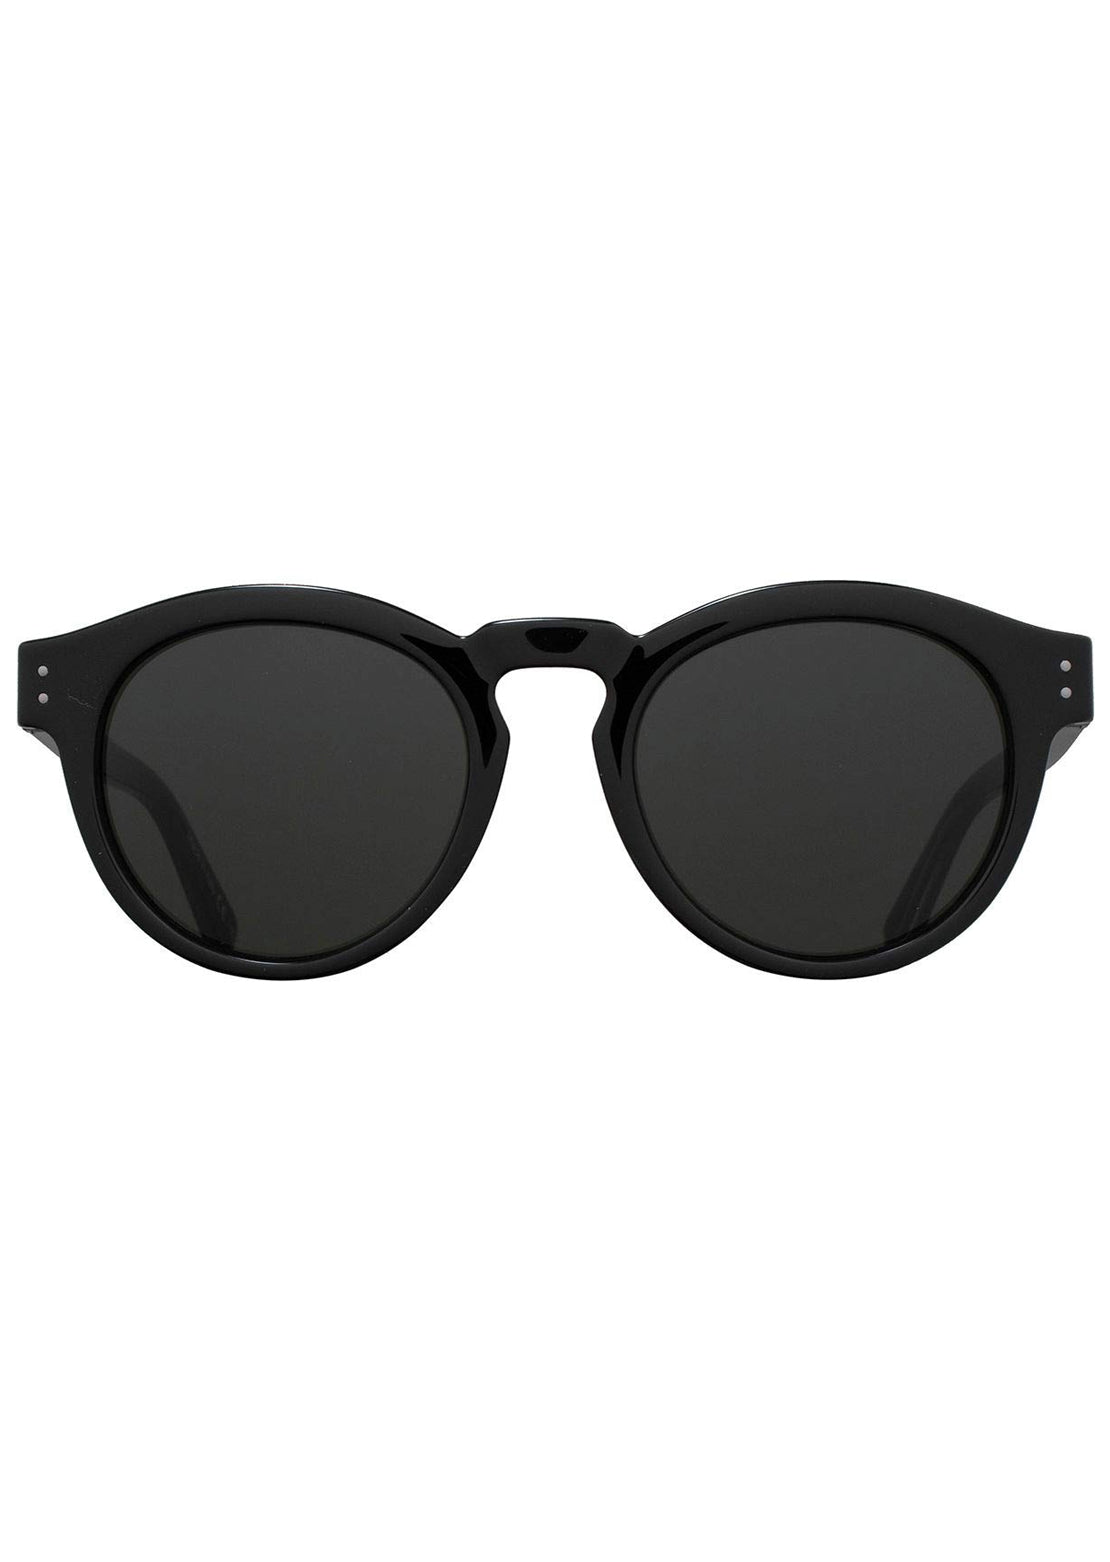 Von Zipper Ditty Sunglasses Black Gloss/Vintage Grey